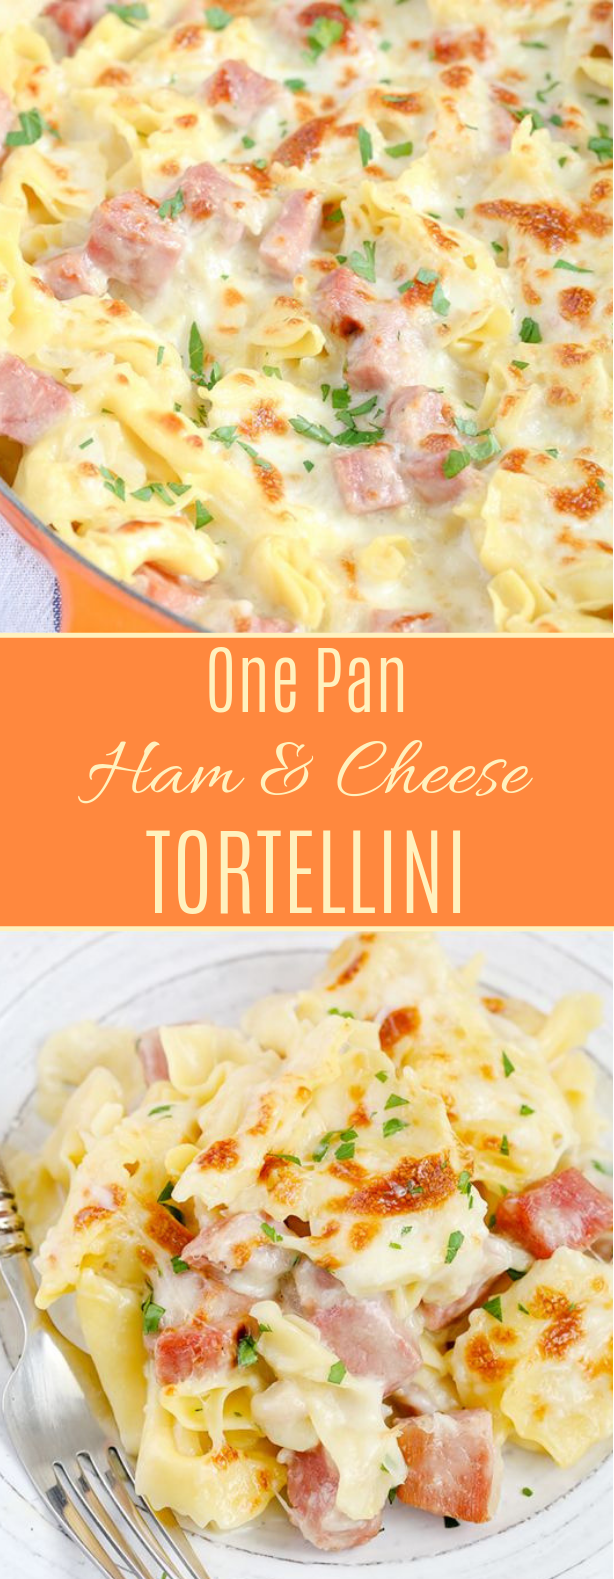 One Pan Ham & Cheese Tortellini #pasta #dinner